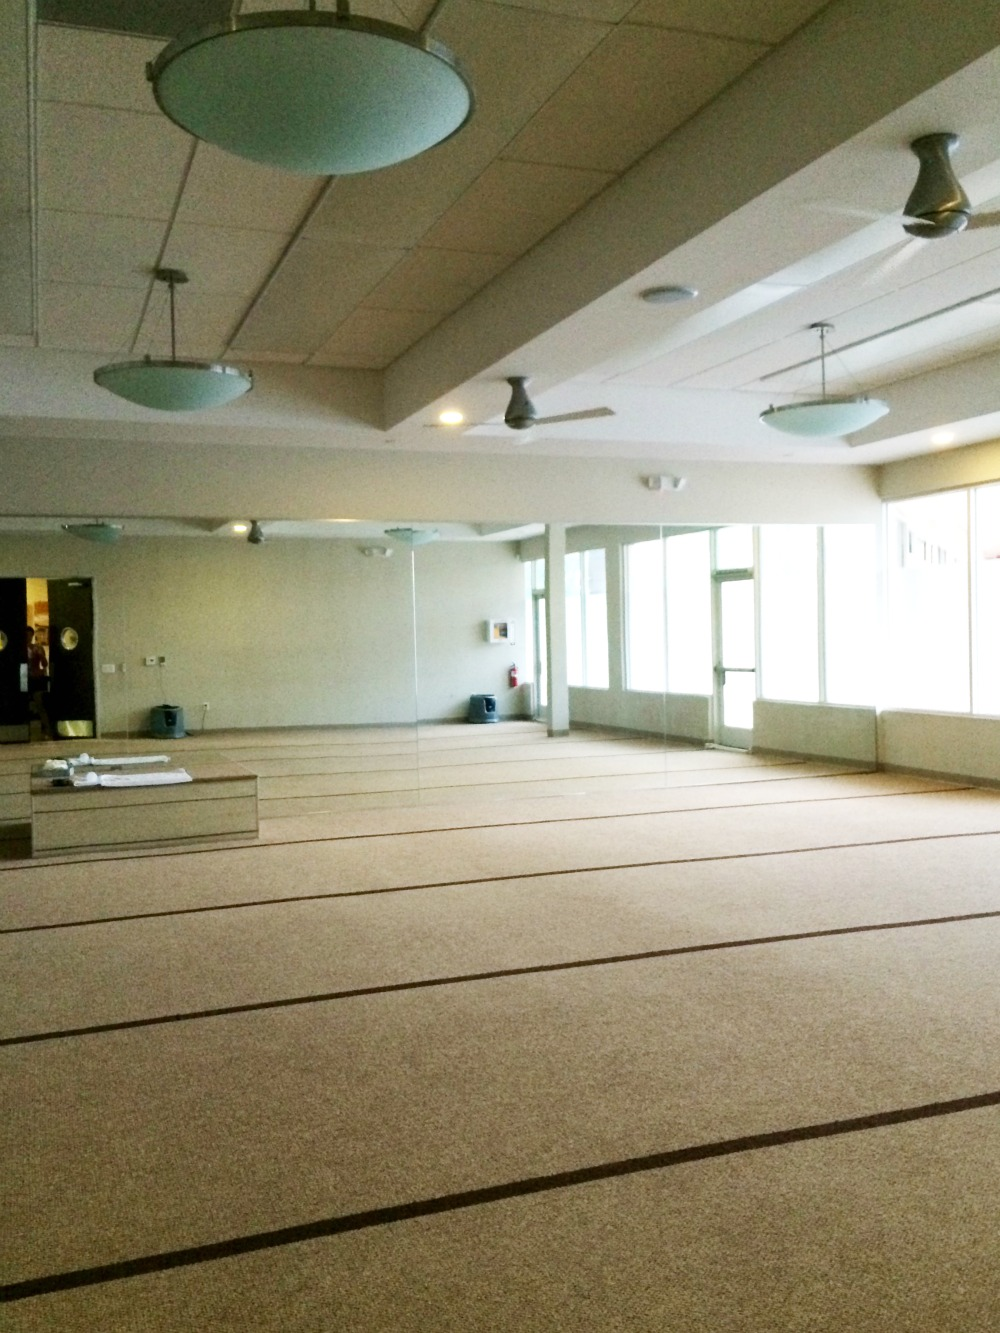 Bikram Yoga studio in Fullerton